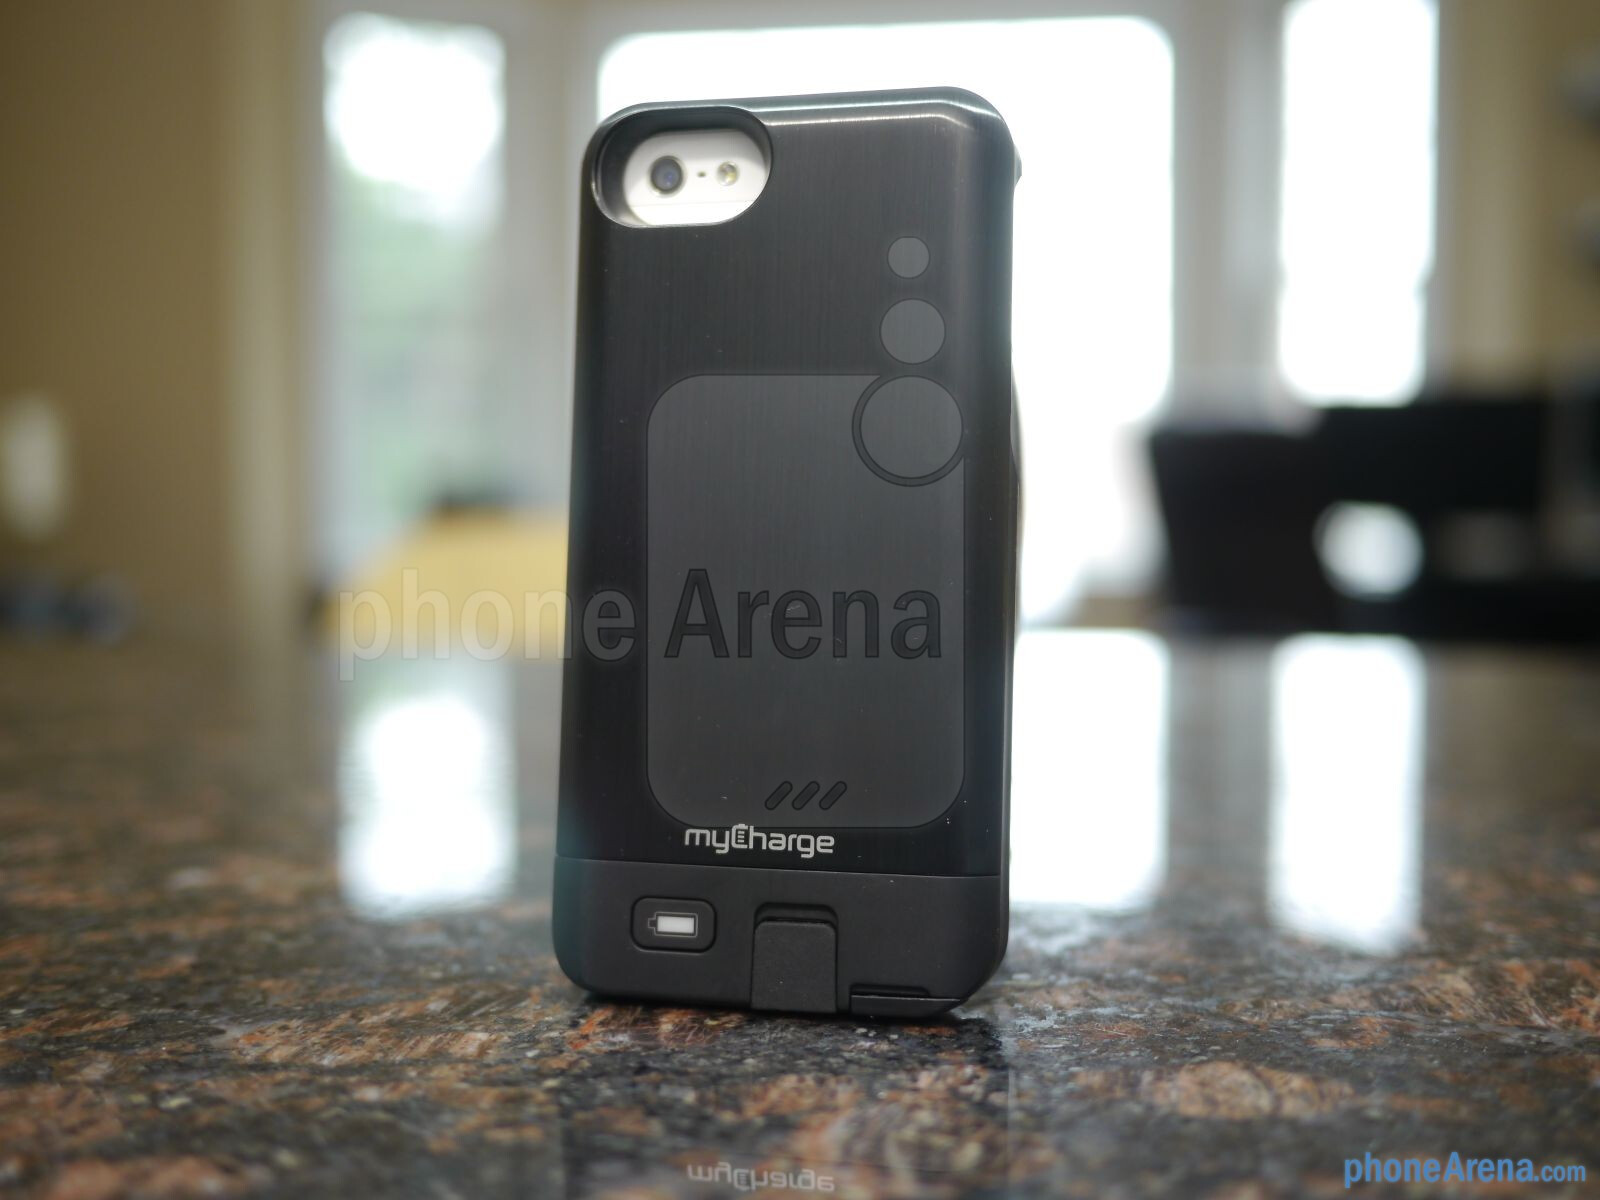 myCharge Freedom 2000 iPhone 5 battery case hands-on : PhoneArena ...